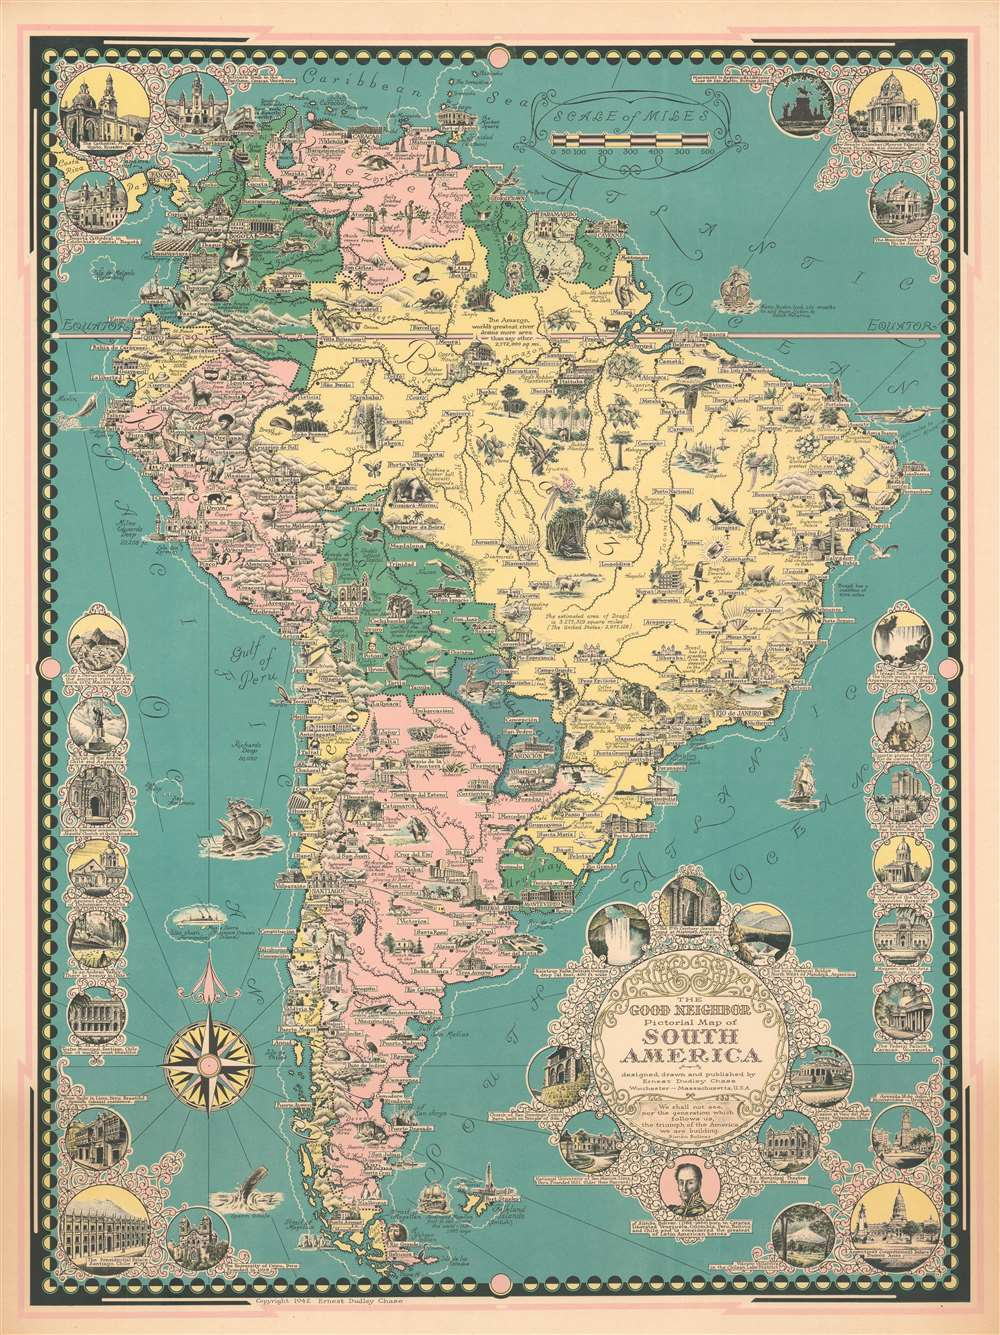 The Good Neighbor Pictorial Map of South America.